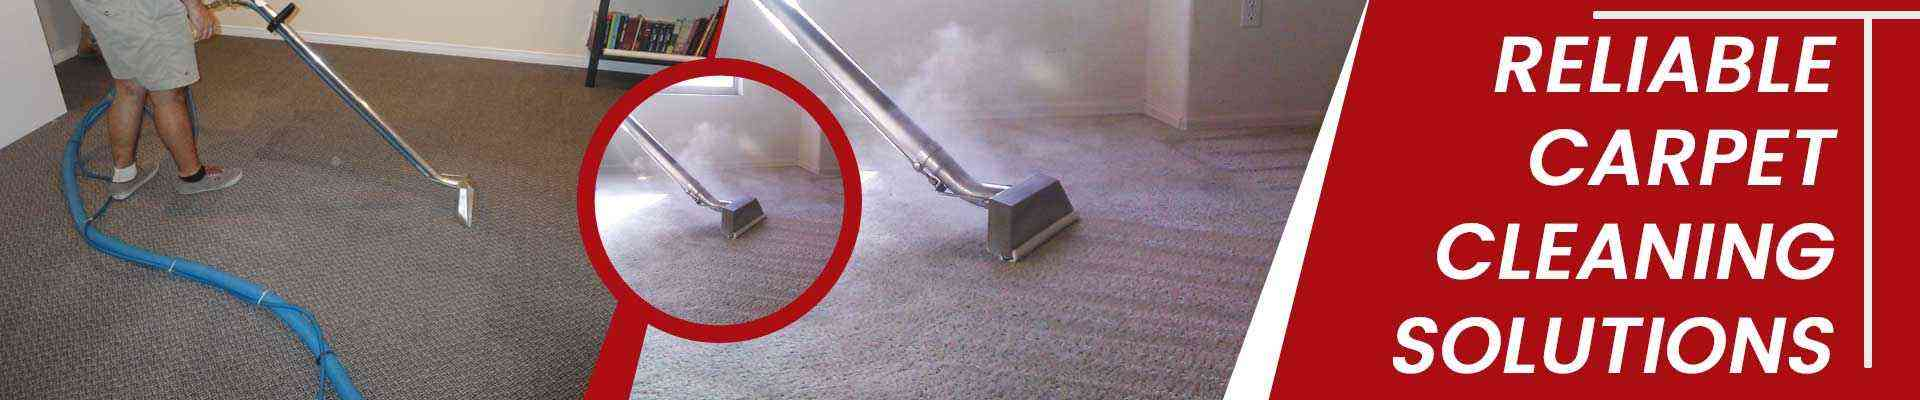 Carpet Cleaning Avon